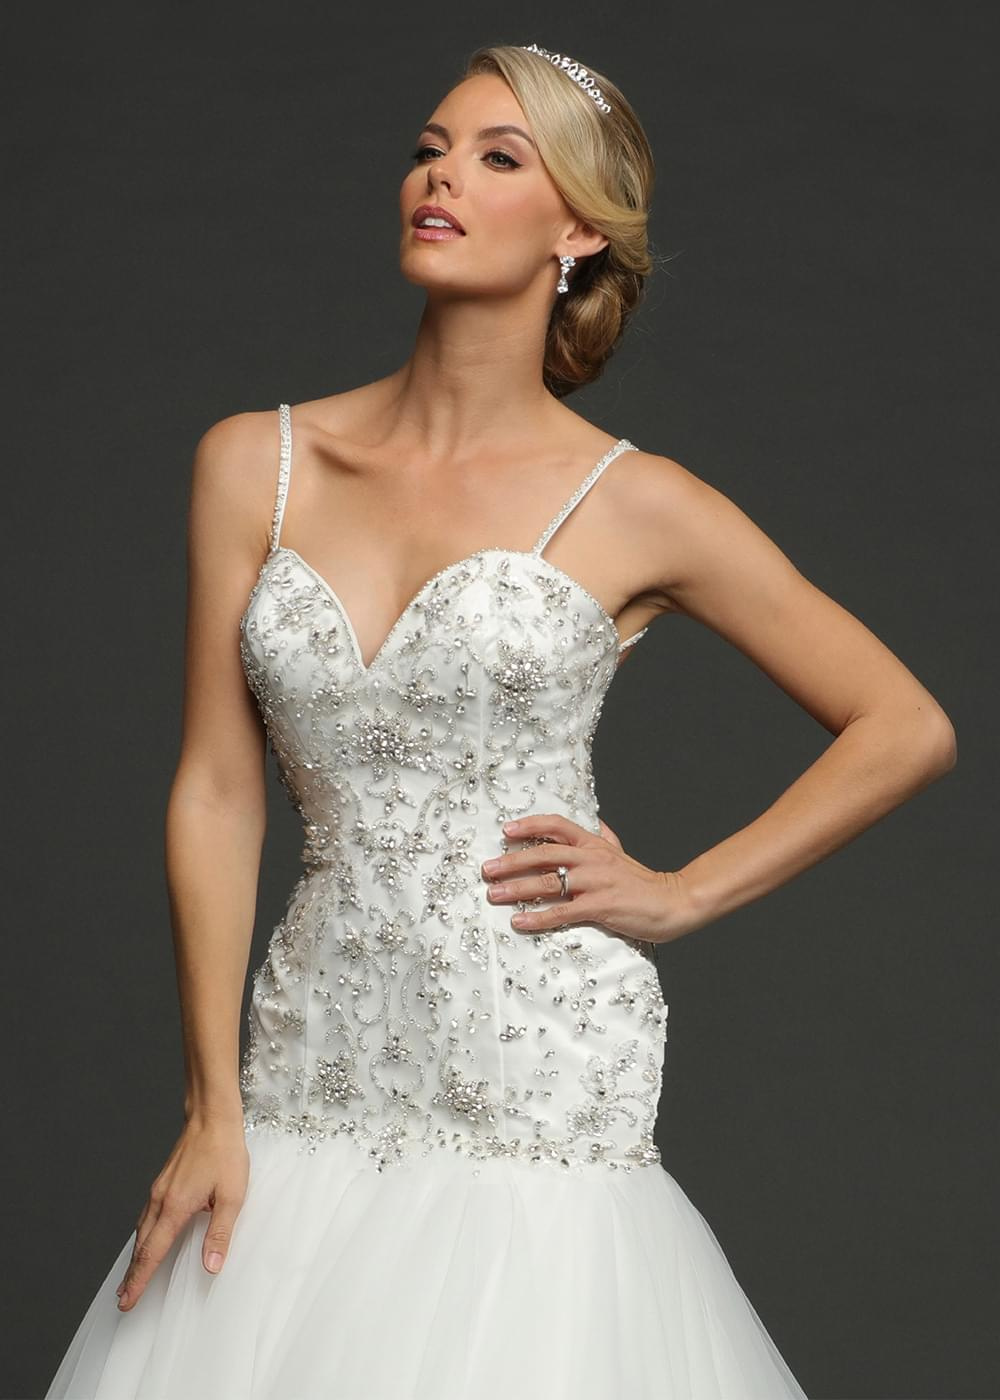 TH-Vivian TH Wedding Dresses By Ashdon